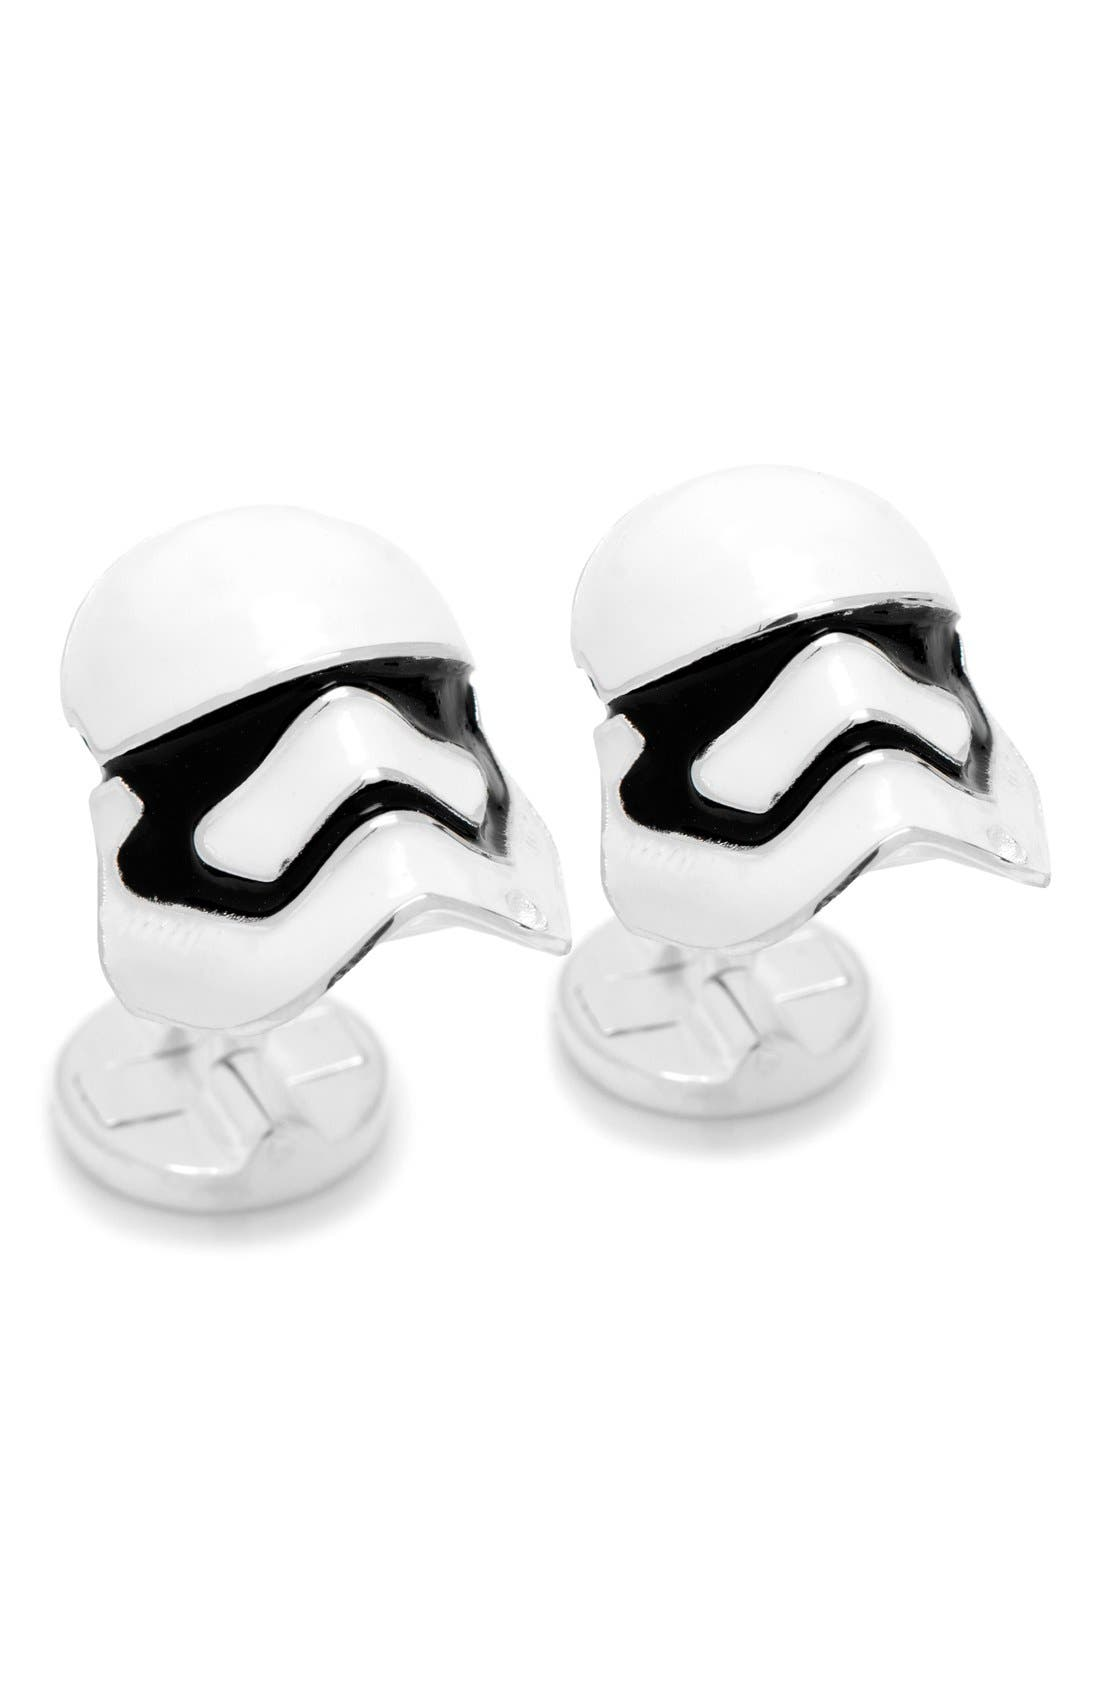 Star Wars Stormtrooper Cuff Links,                             Main thumbnail 1, color,                             White